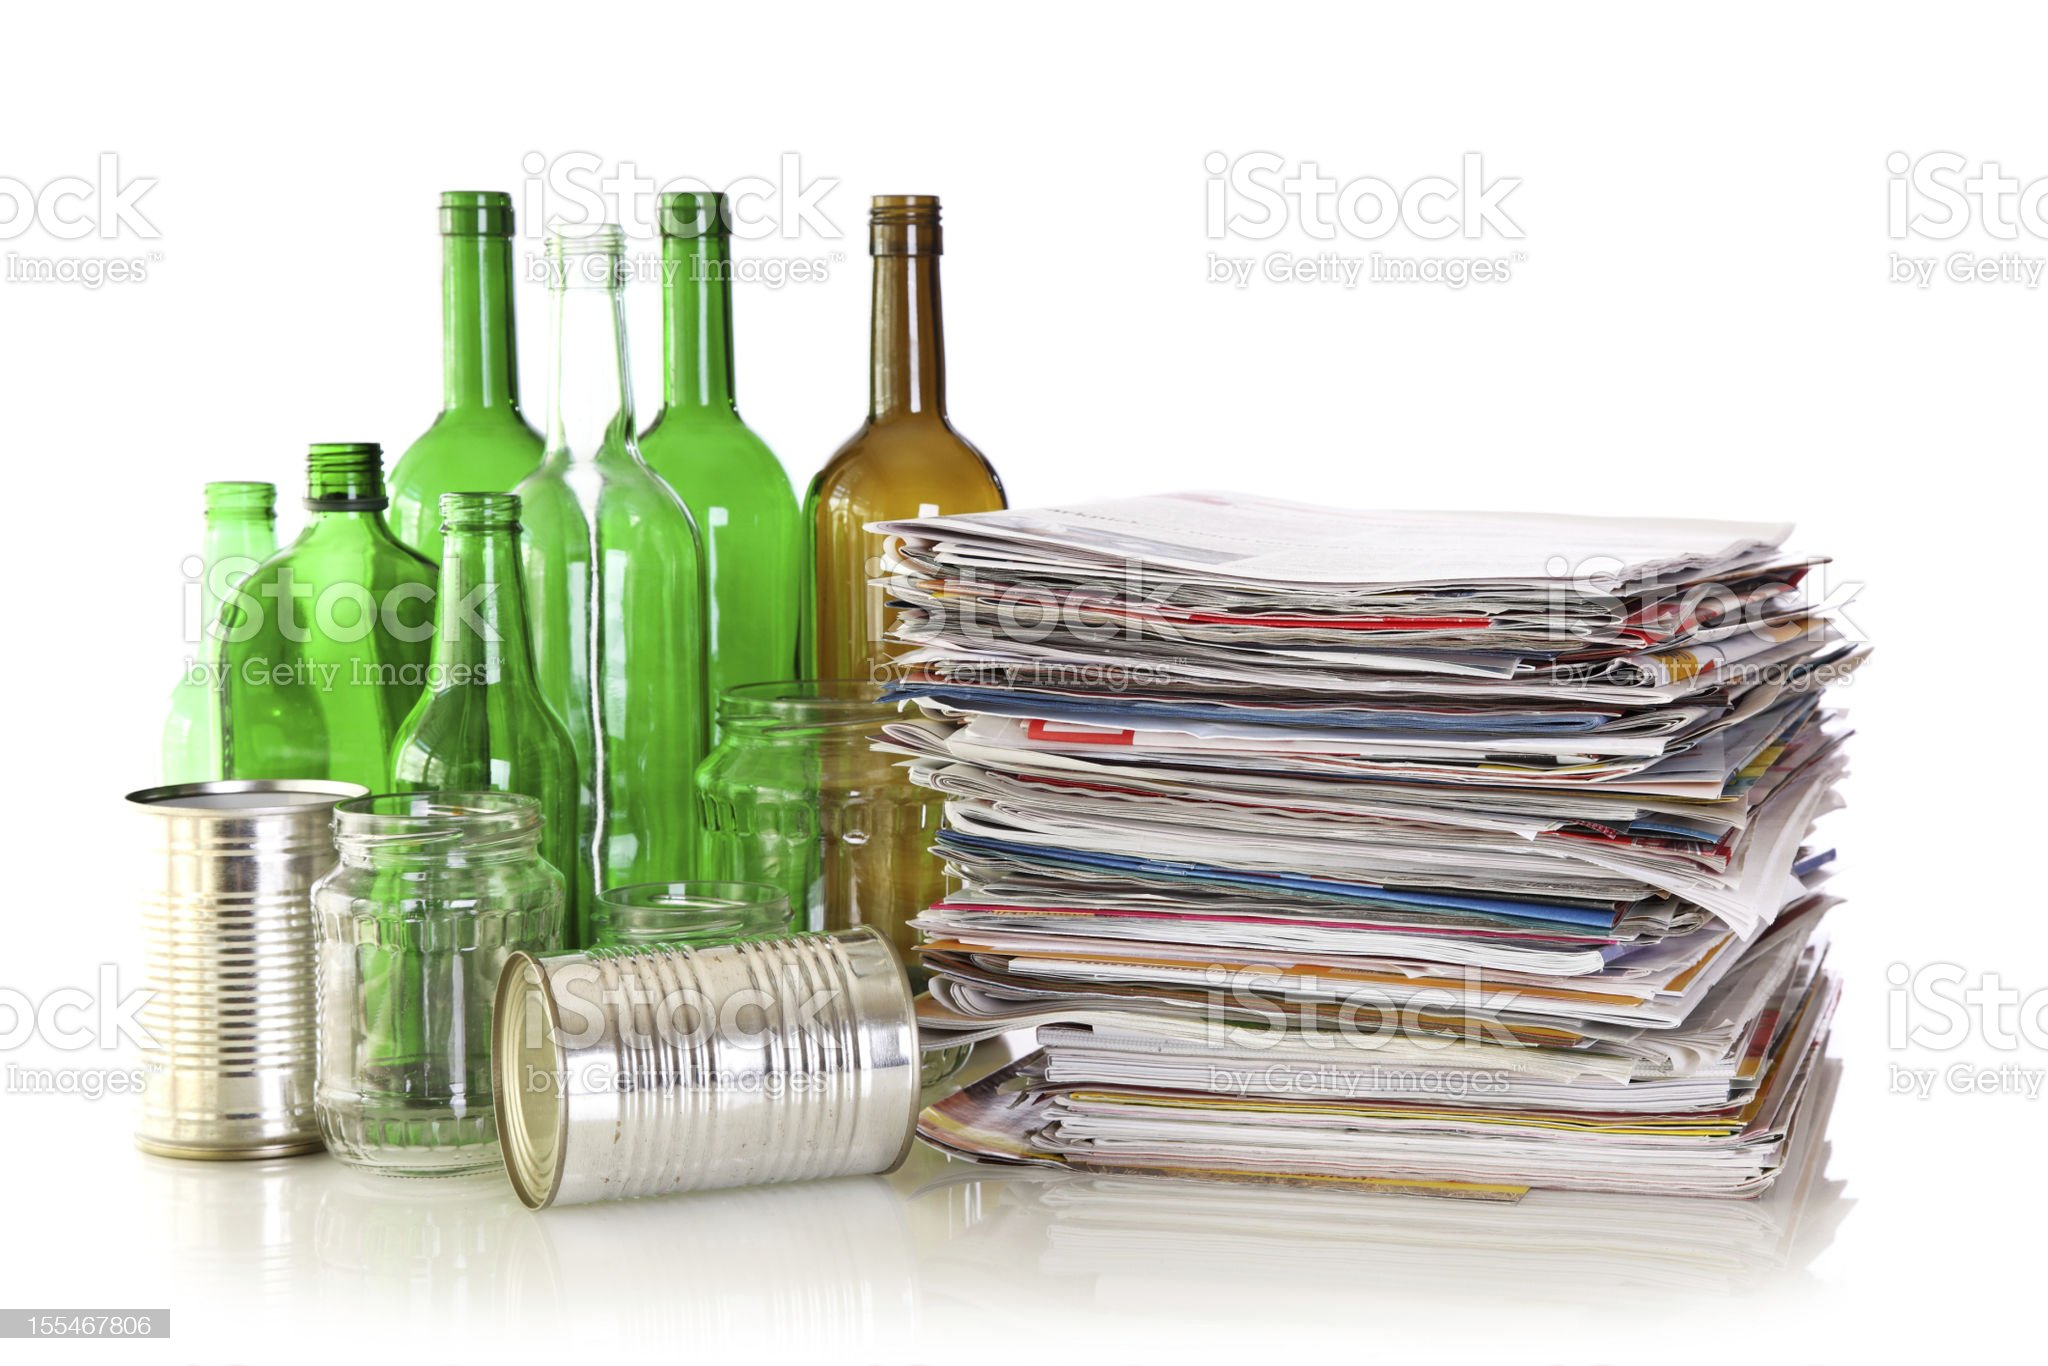 Glass bottles, metal cans and newspapers royalty-free stock photo